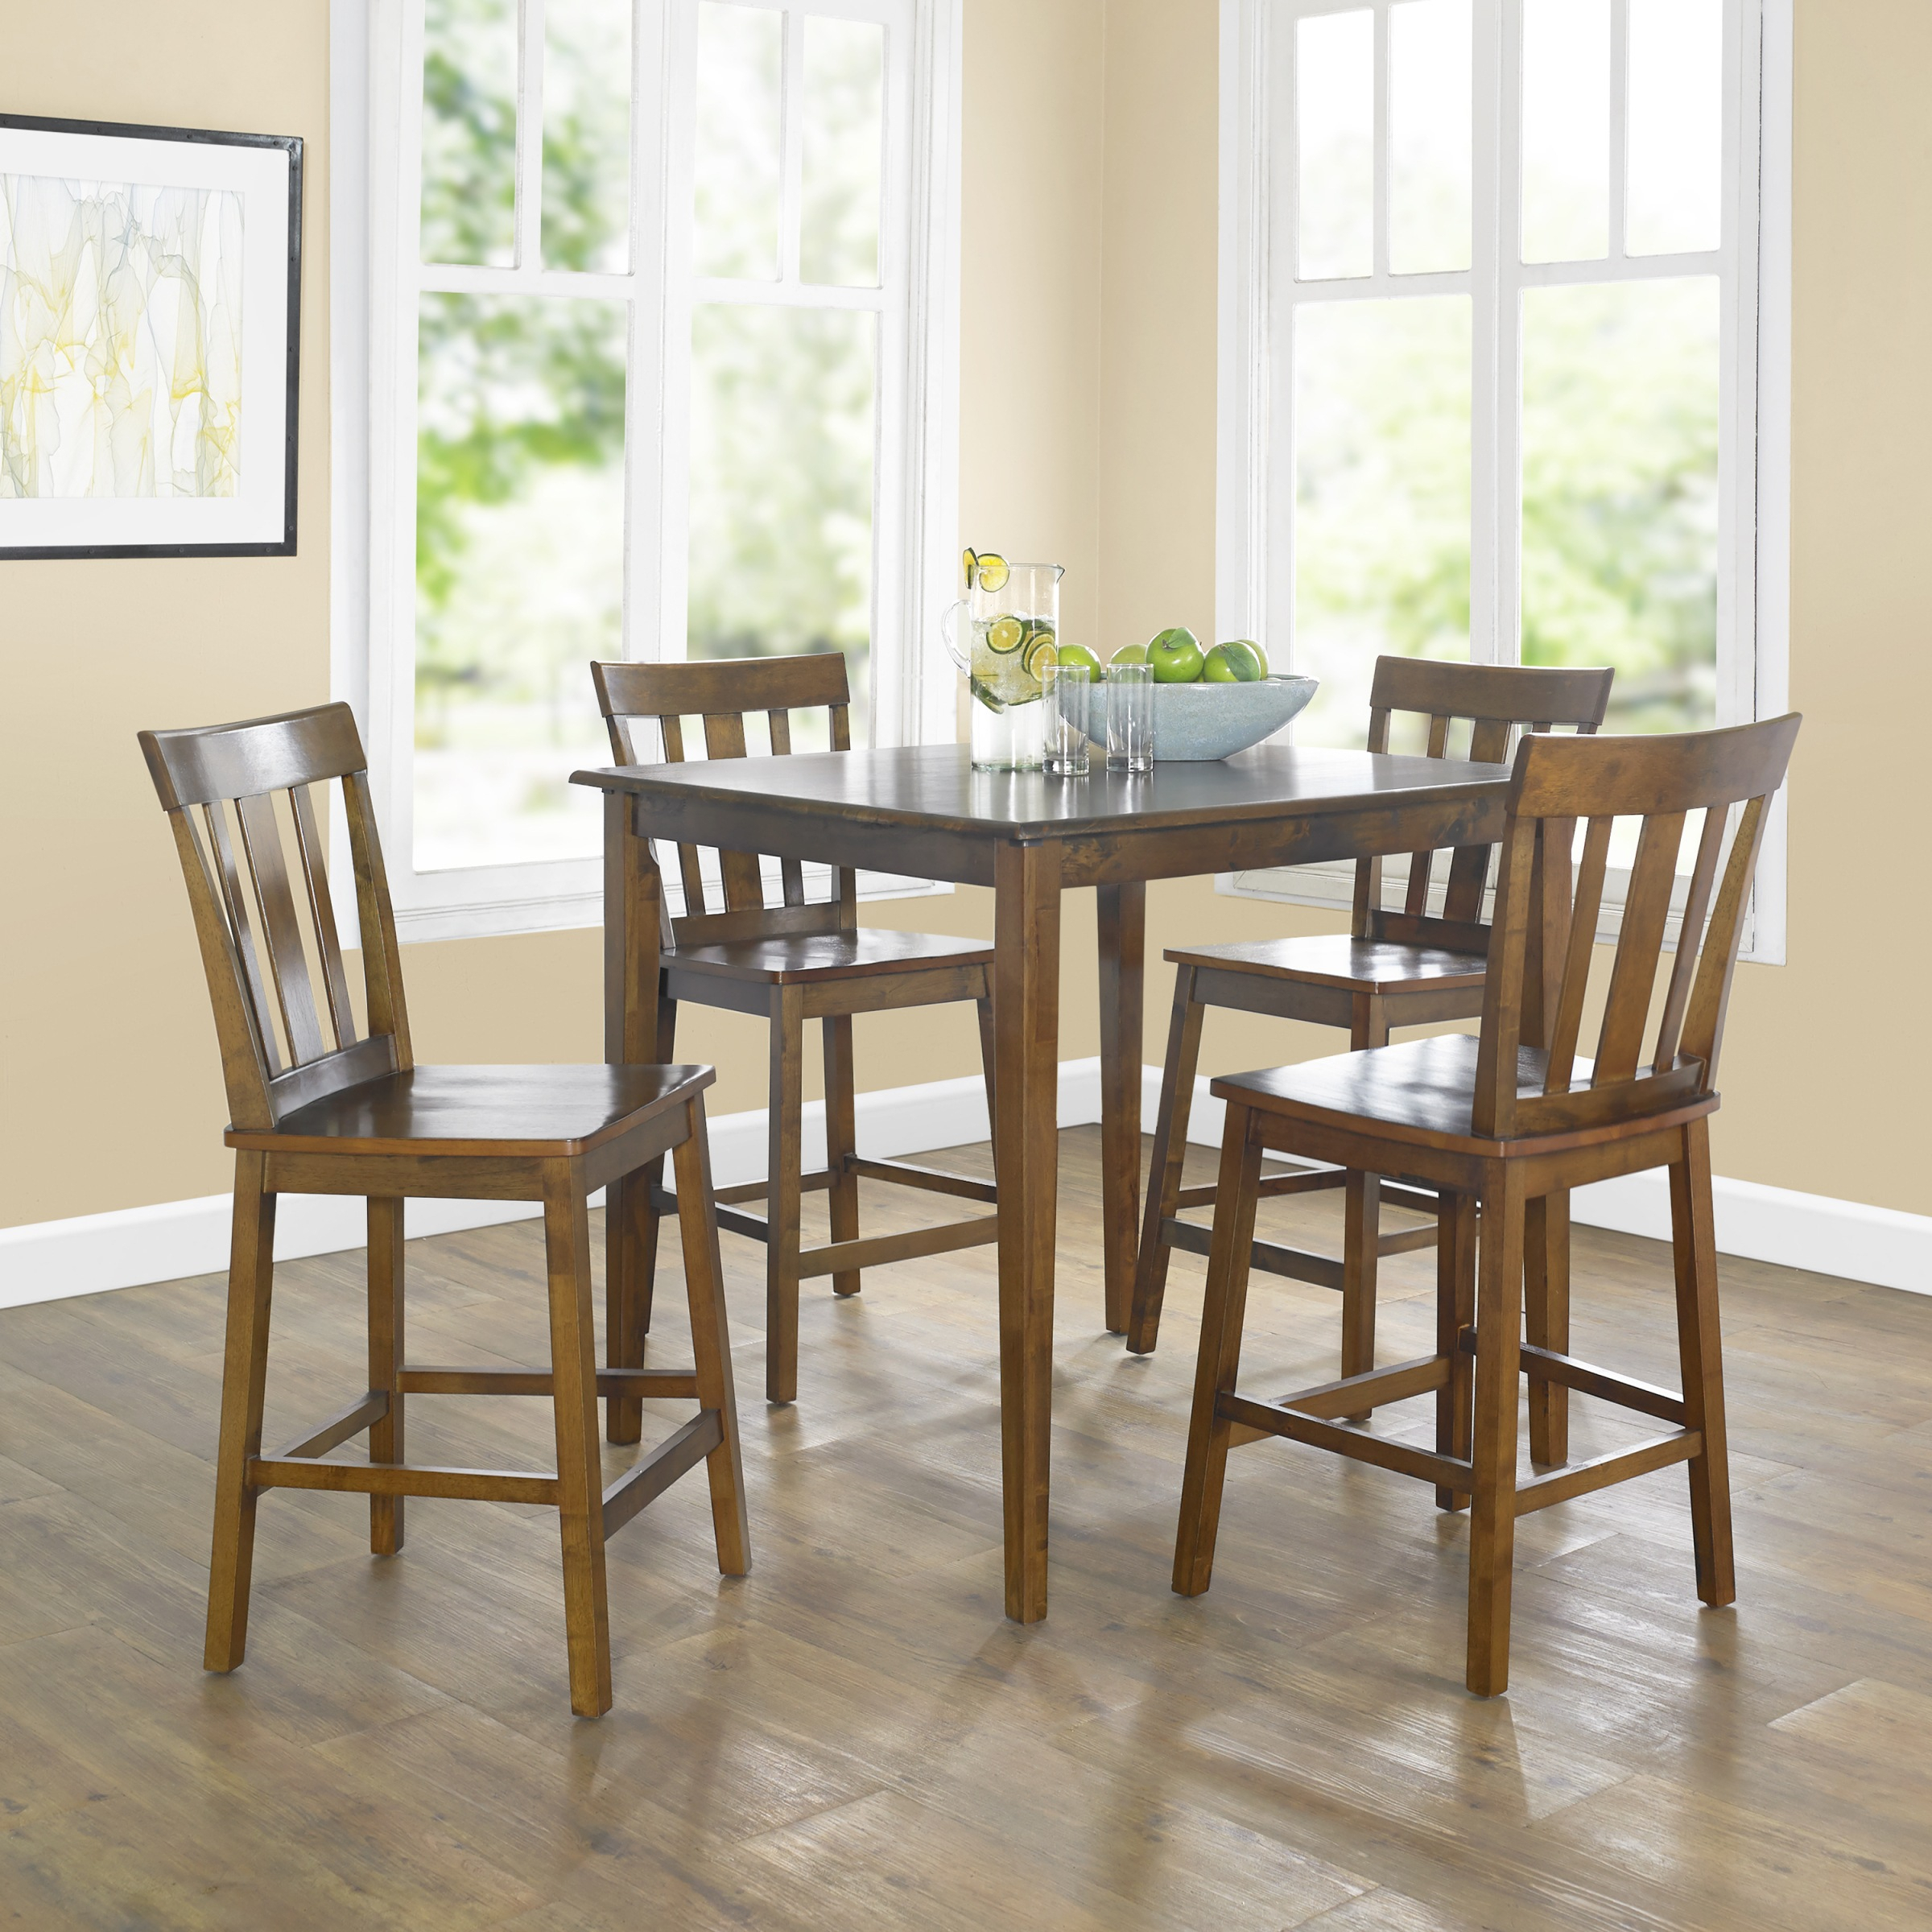 Famous Goodman 5 Piece Solid Wood Dining Sets (Set Of 5) With Regard To Mainstays 5 Piece Mission Counter Height Dining Set – Walmart (#4 of 20)